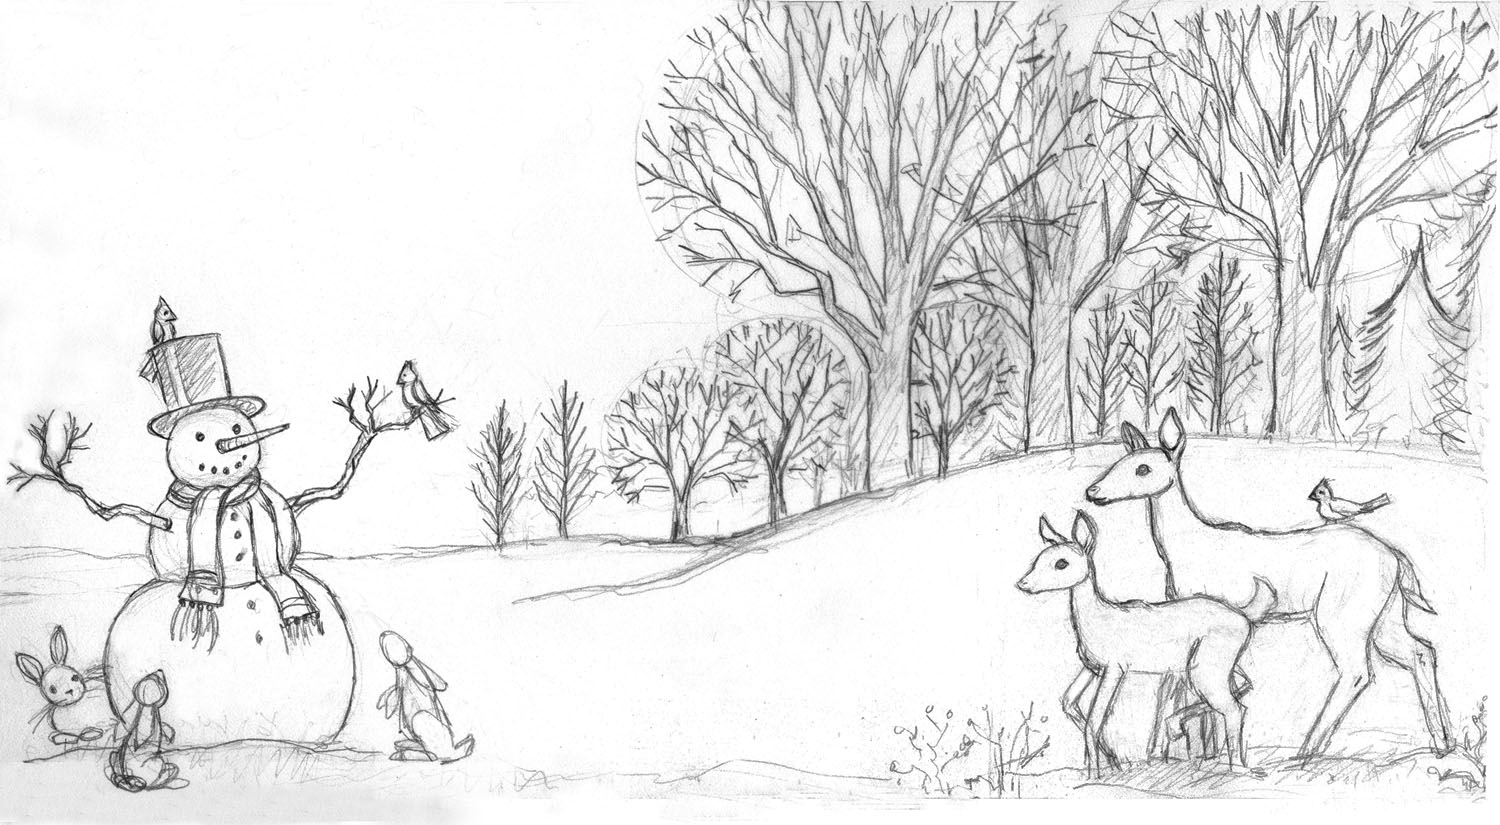 ... Coloring Pages Winter additionally Winter Scene Coloring Pages further